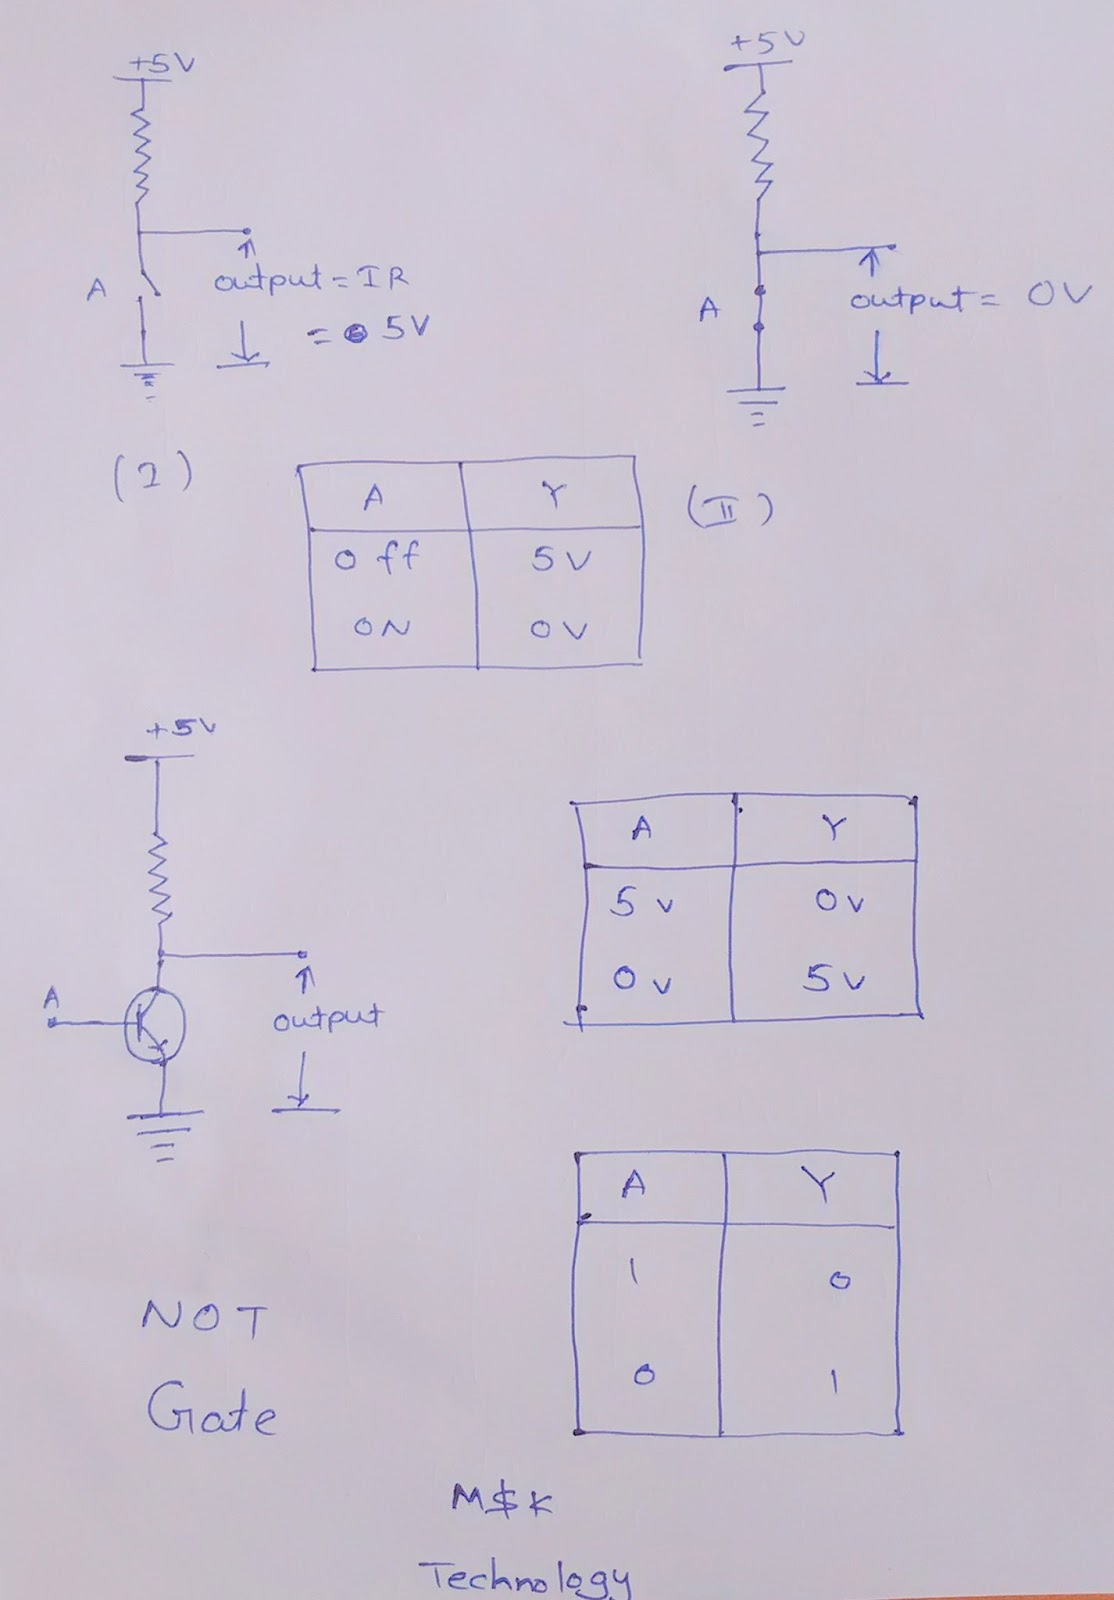 small resolution of similarly not gate is also made from transistors fig 3 shows the circuit for a not gate using a switch